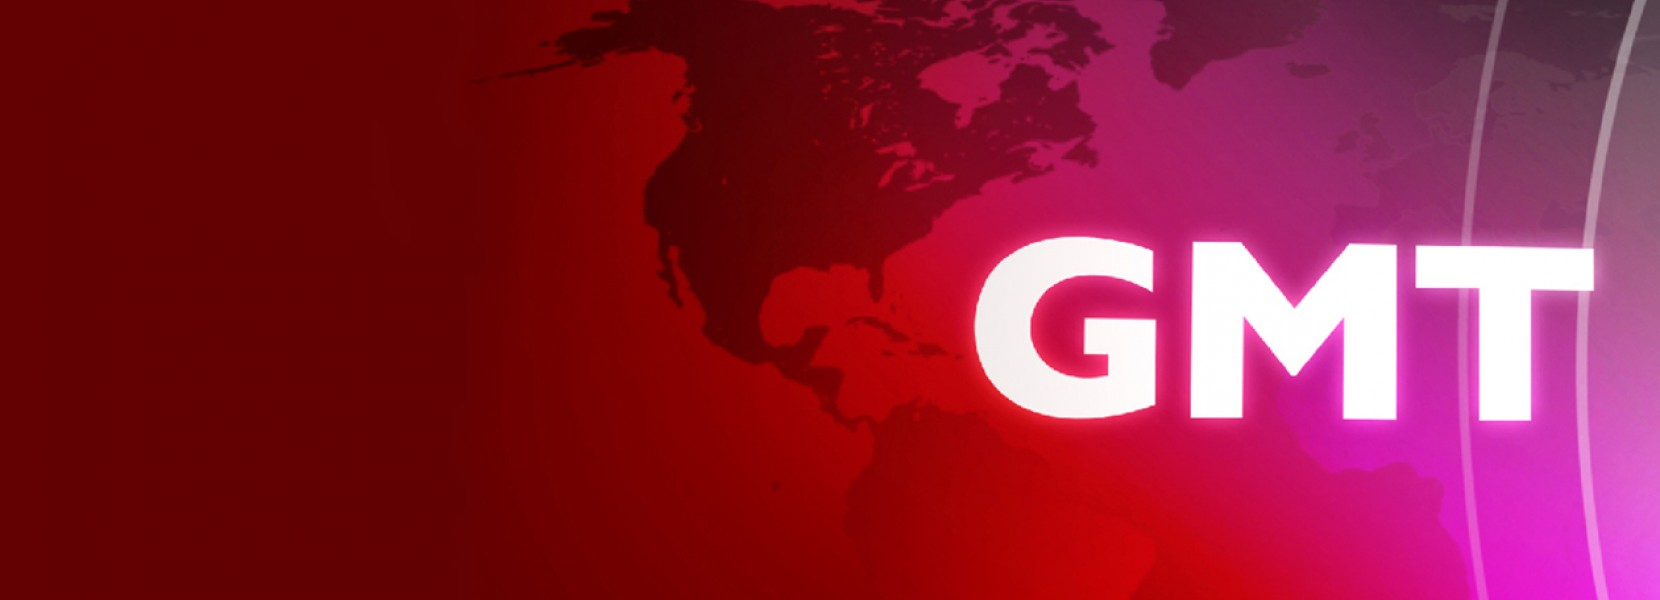 BBC World News - GMT